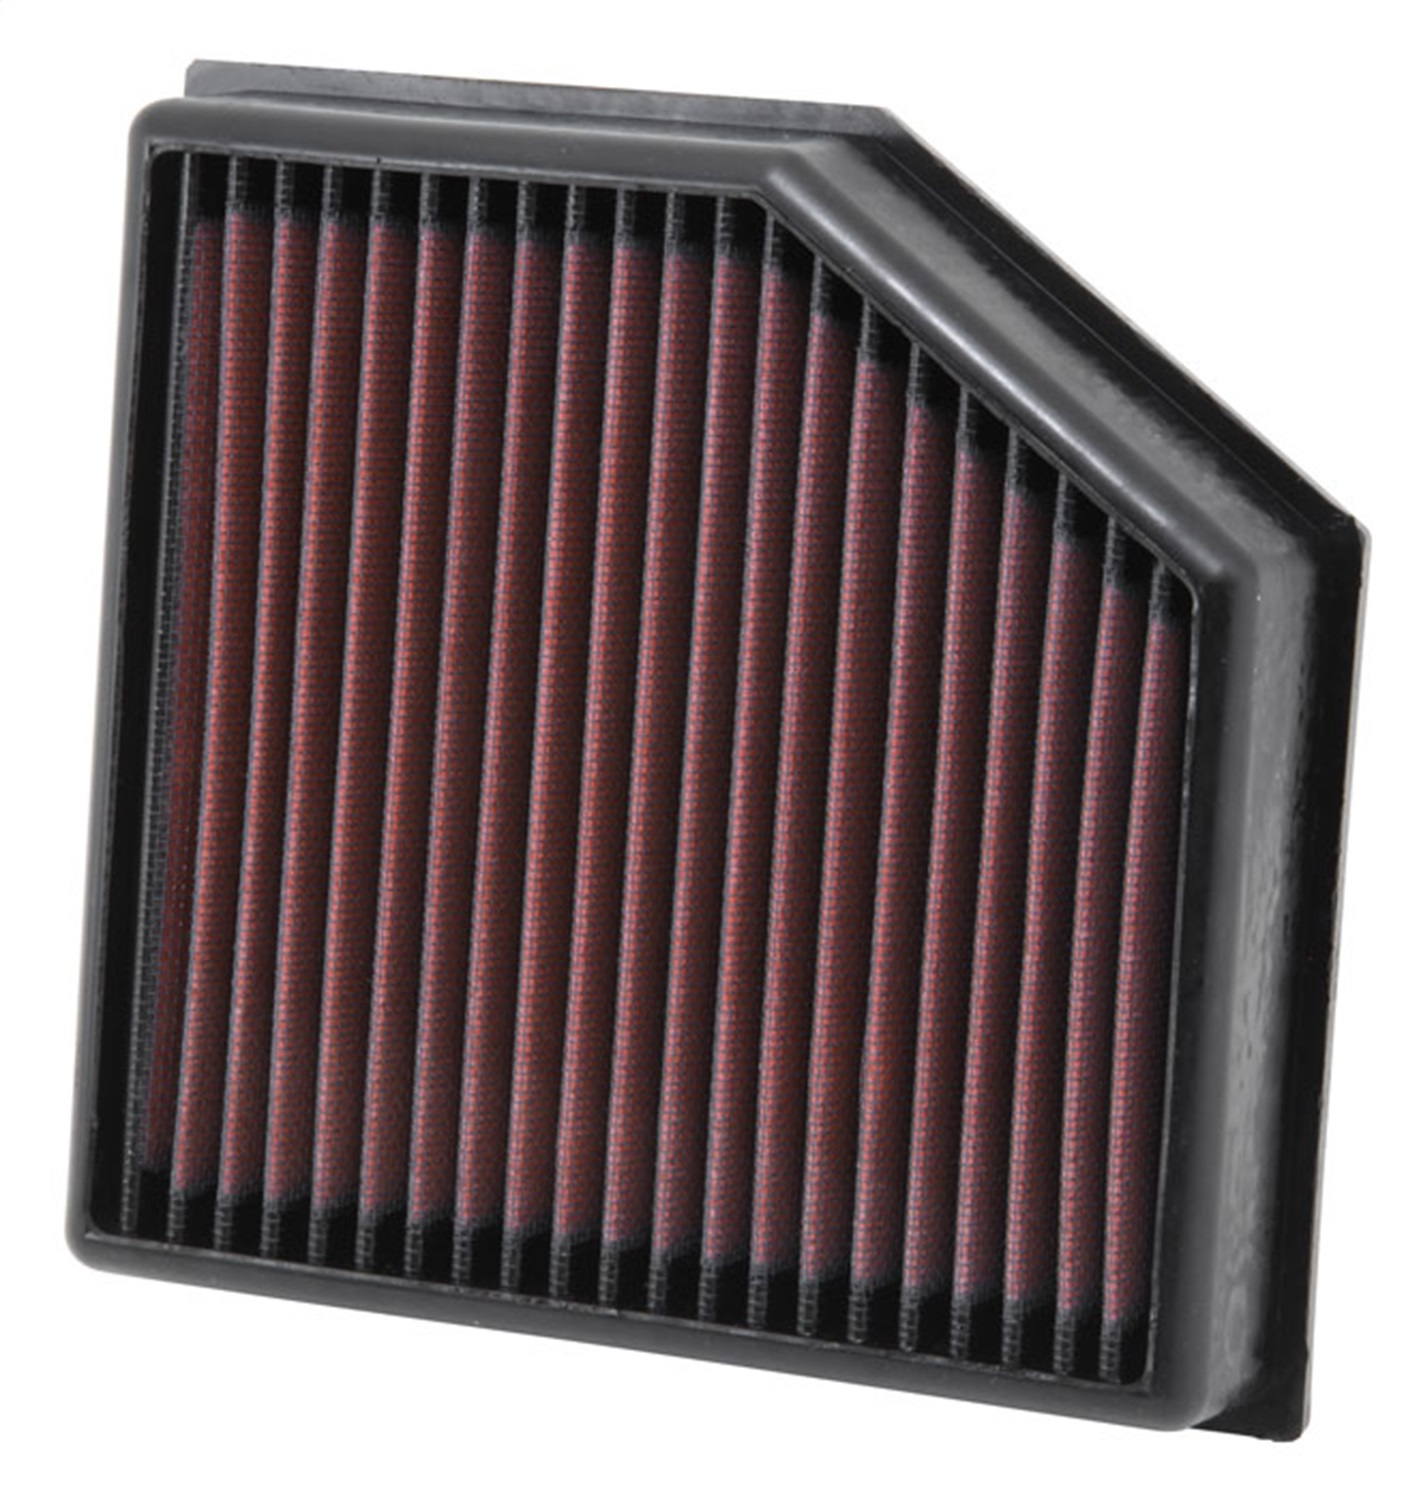 K&N Filters 33-2491 Air Filter Fits 13-15 Dart 33-2491